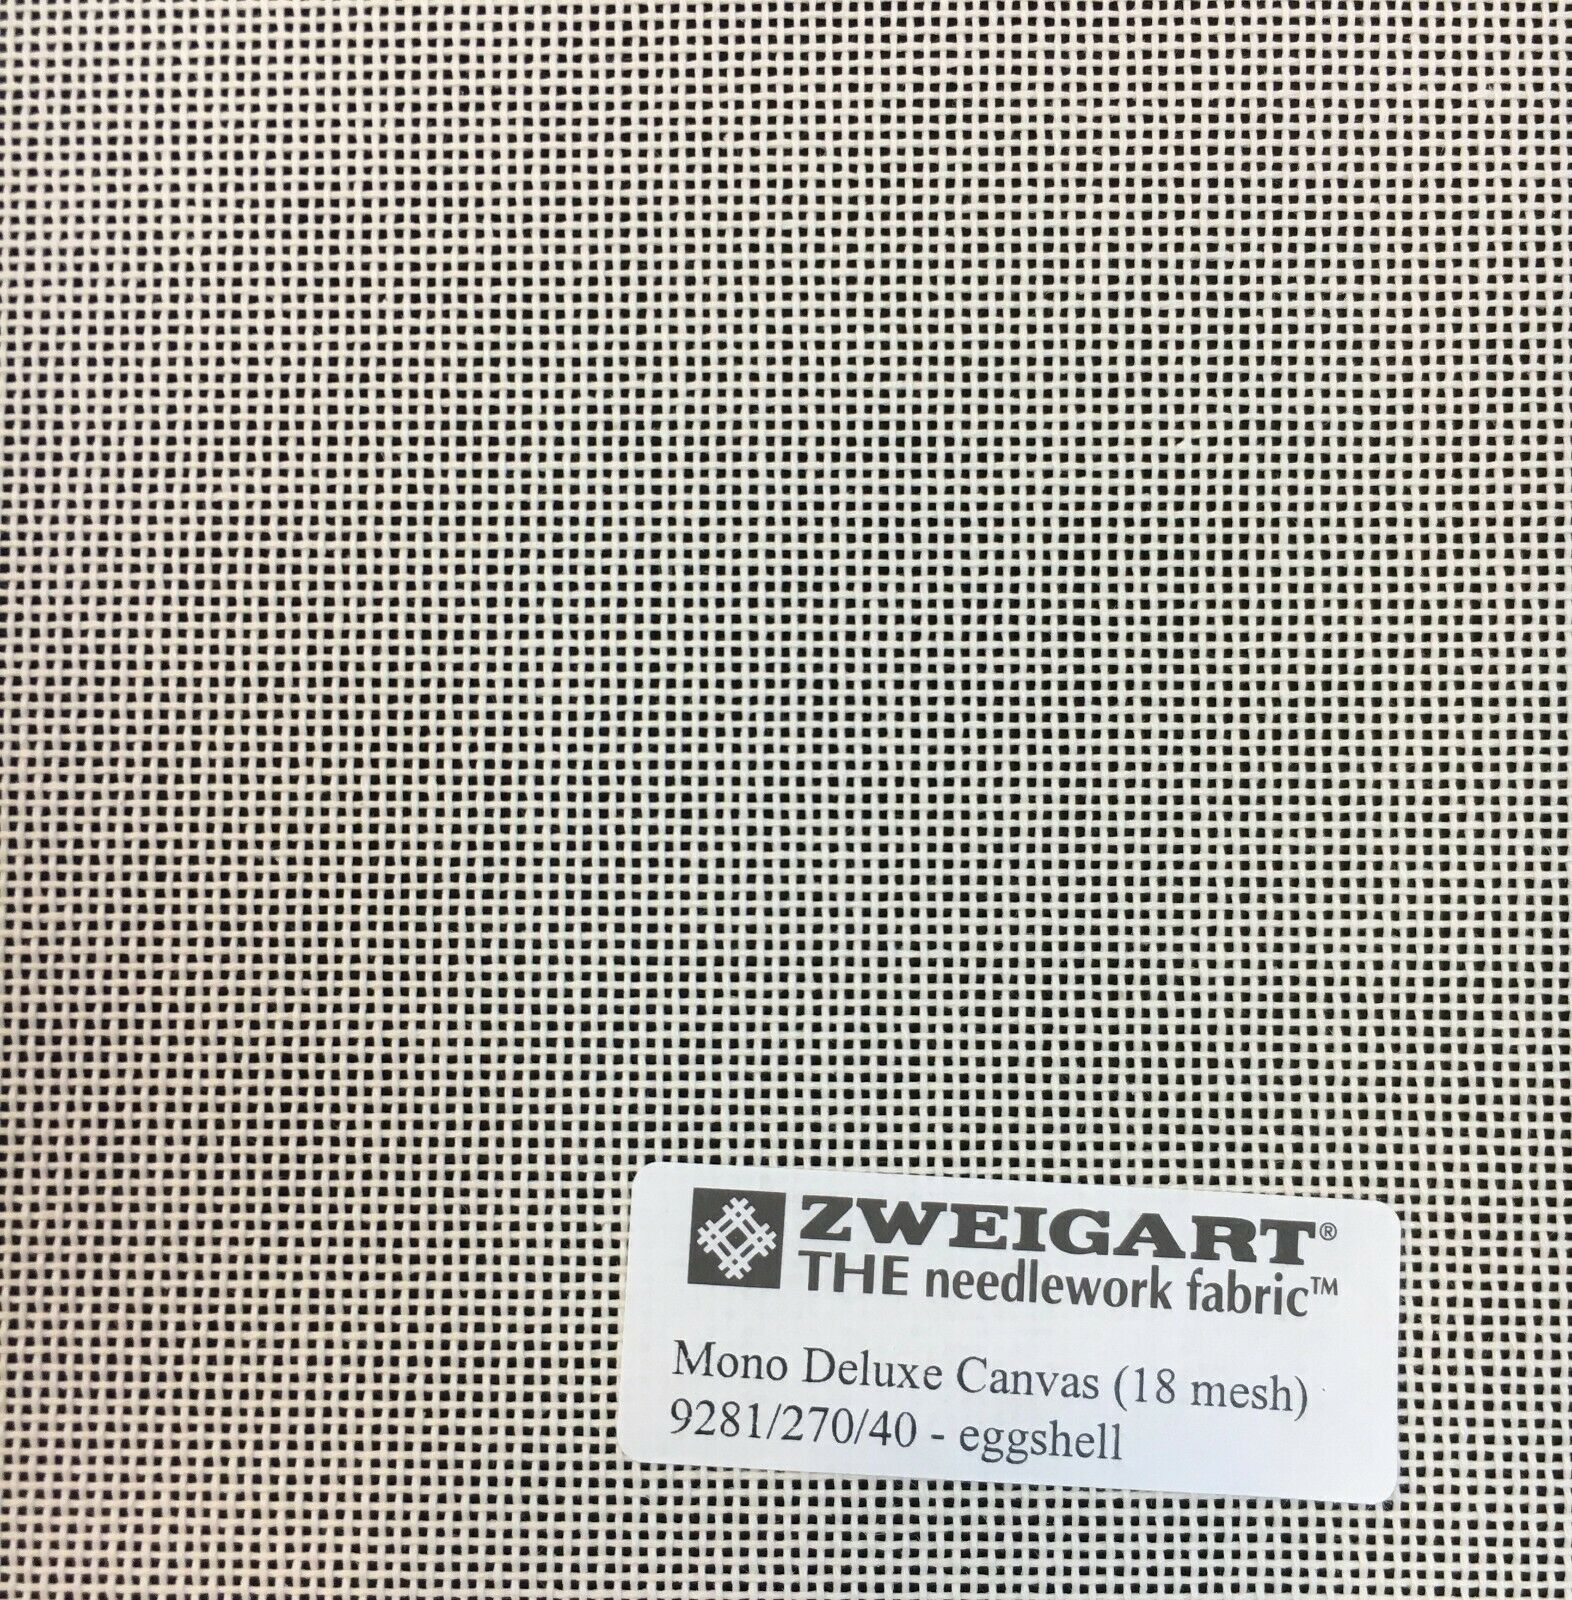 Primary image for Zweigart Needlepoint Canvas Mono Deluxe 18 Count Eggshell Custom Cuts Blank